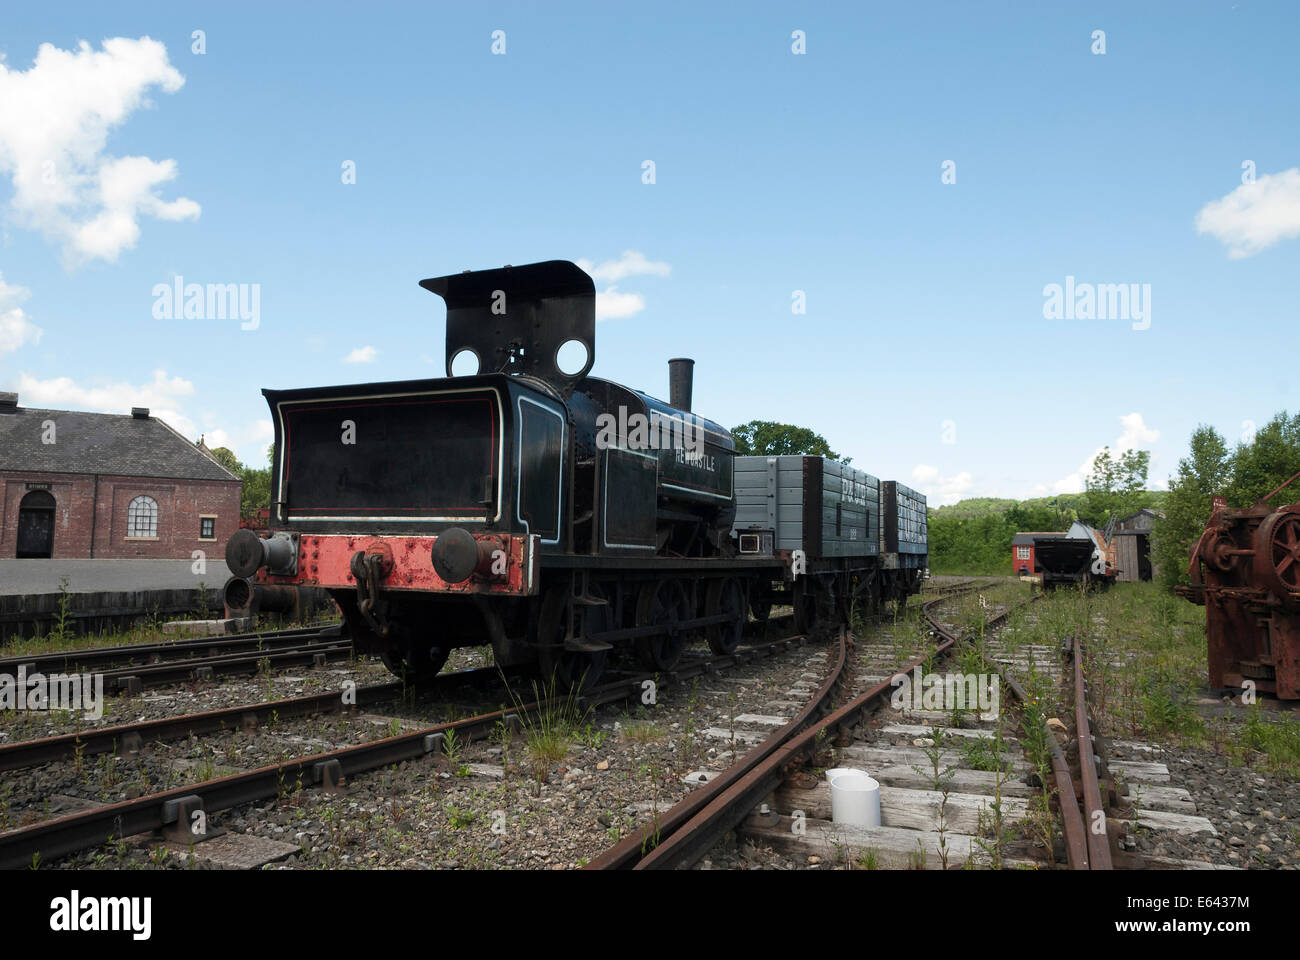 Disused railway track and goods train at Beamish Museum. - Stock Image